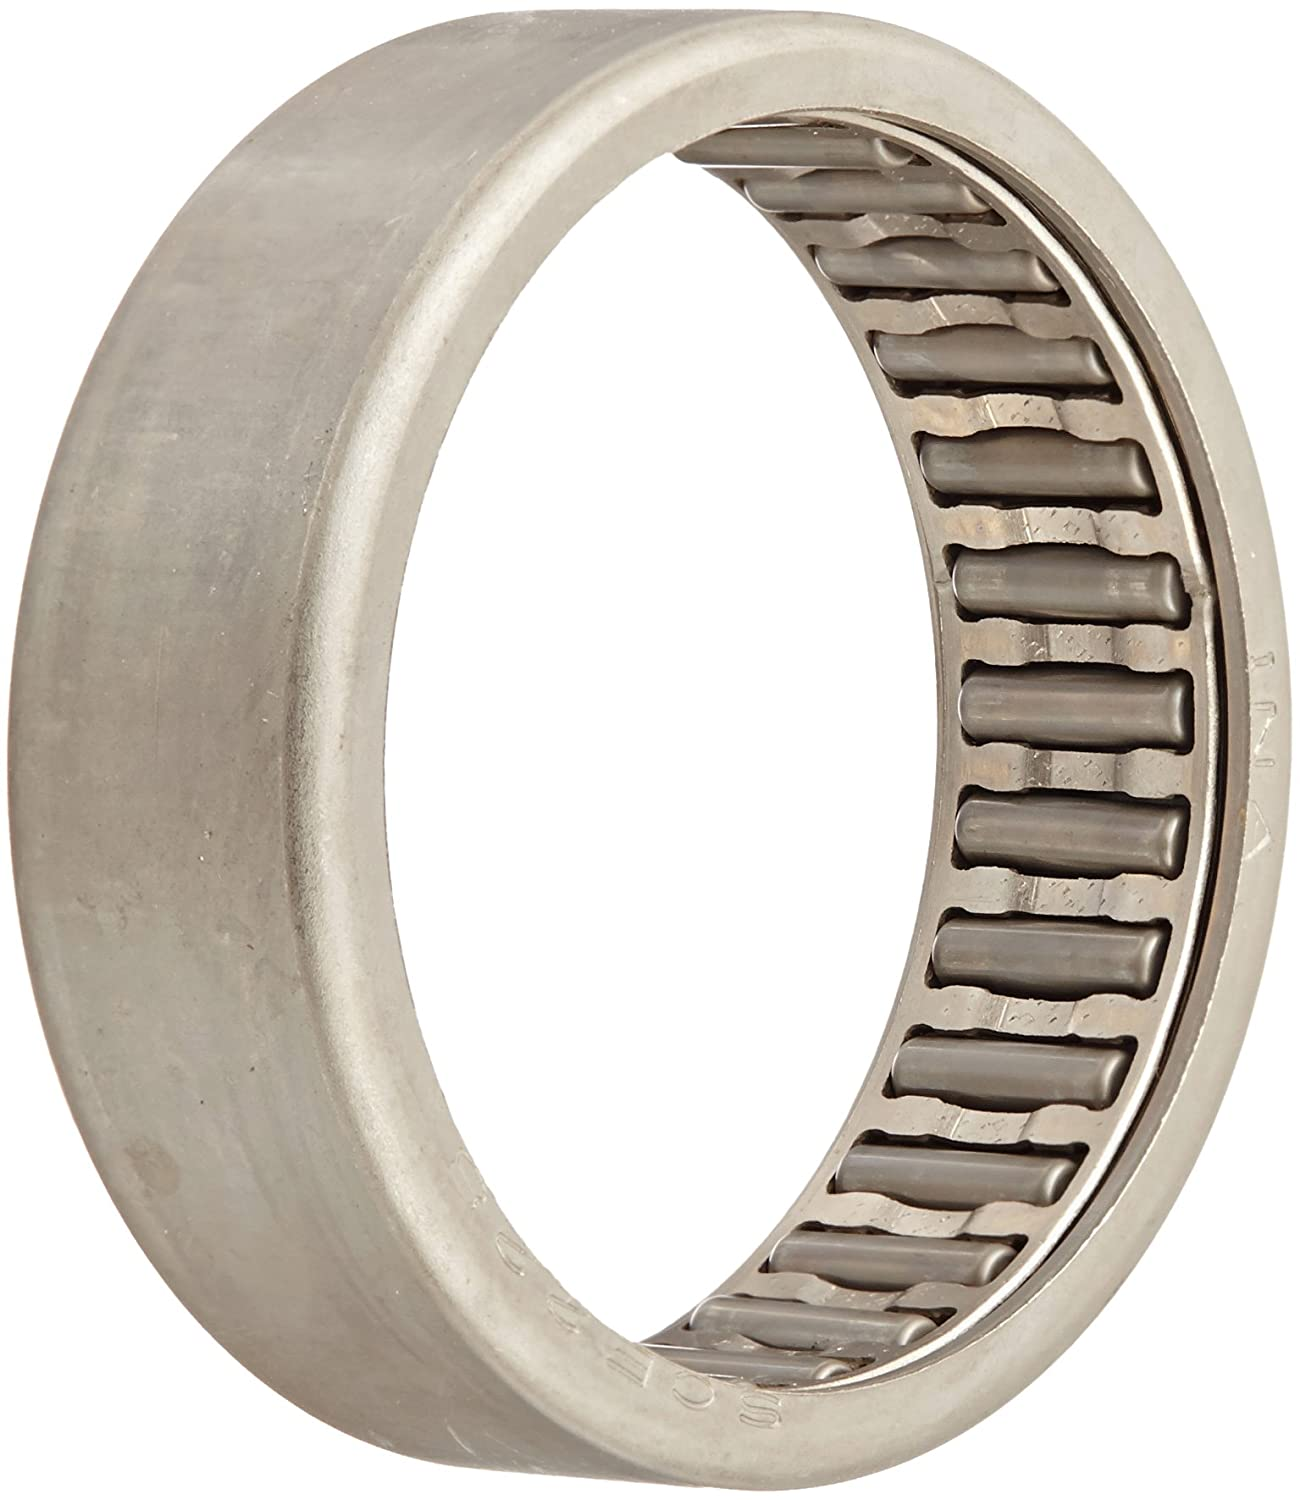 5300lbf Static Load Capacity 1//2 Width INA SCE228 Needle Roller Bearing Steel Cage Inch 1-3//8 ID Open End 8000rpm Maximum Rotational Speed 3050lbf Dynamic Load Capacity 1-3//8 ID 1-5//8 OD 1//2 Width 1-5//8 OD